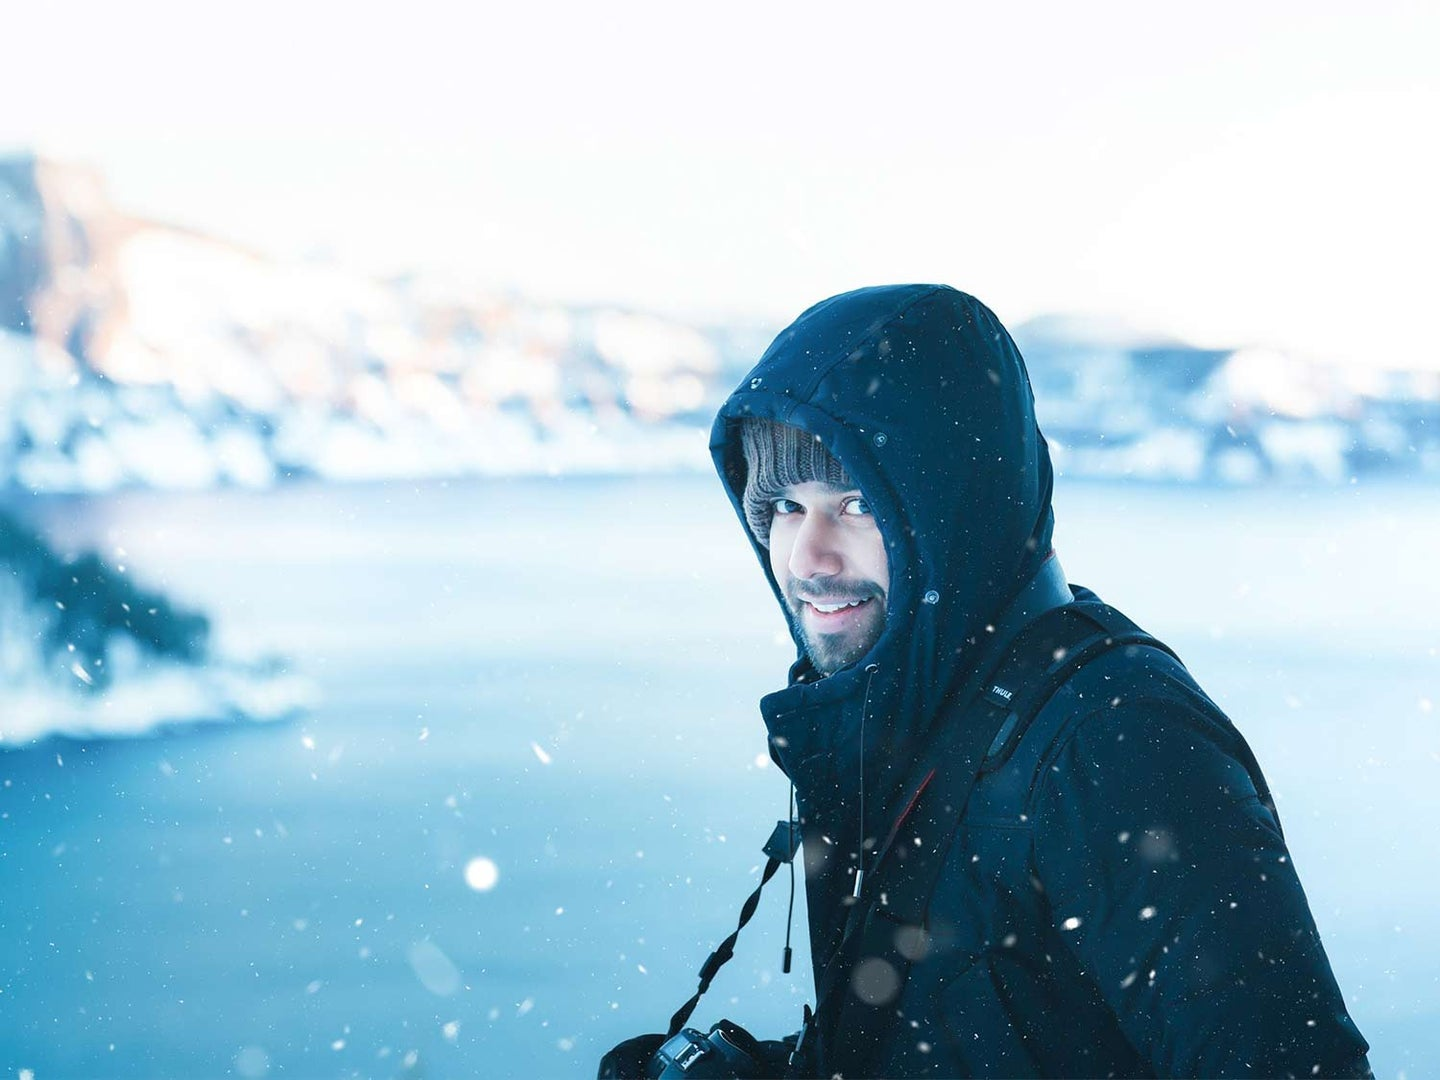 A bearded man wears a parka and stands in front of a snowy backdrop.